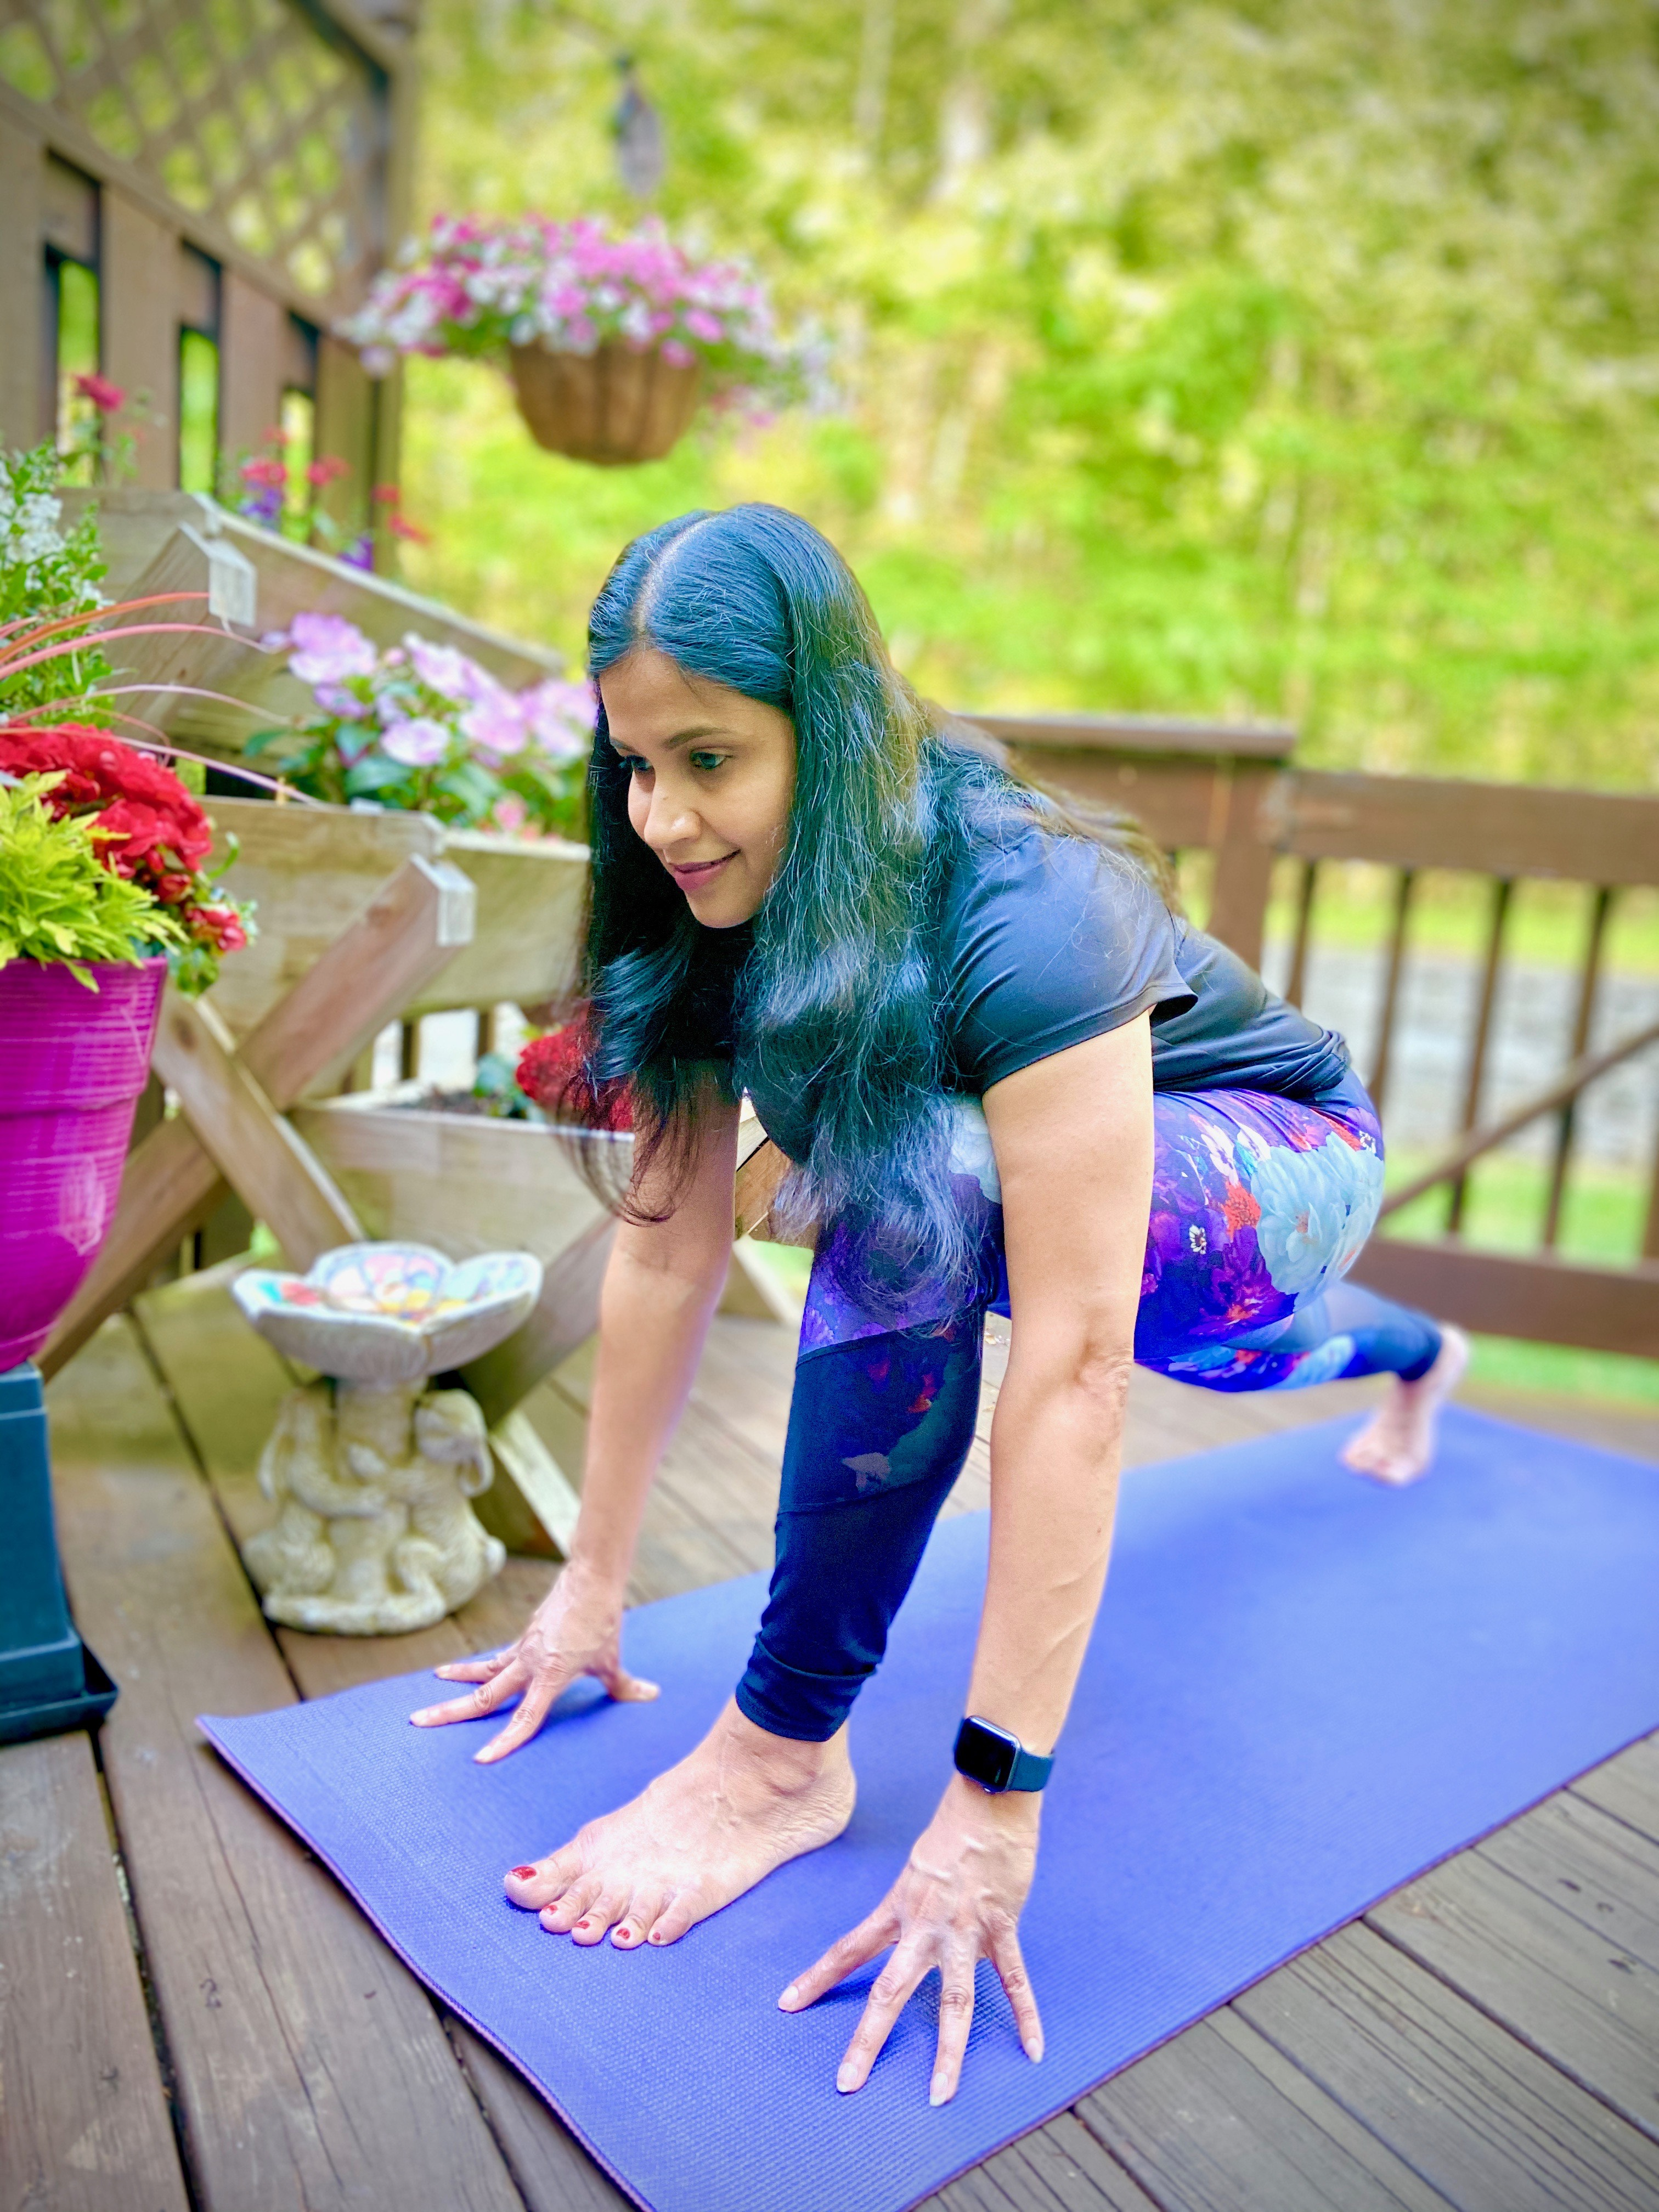 Vinyasa Flow Yoga on Facebook Live and Recorded